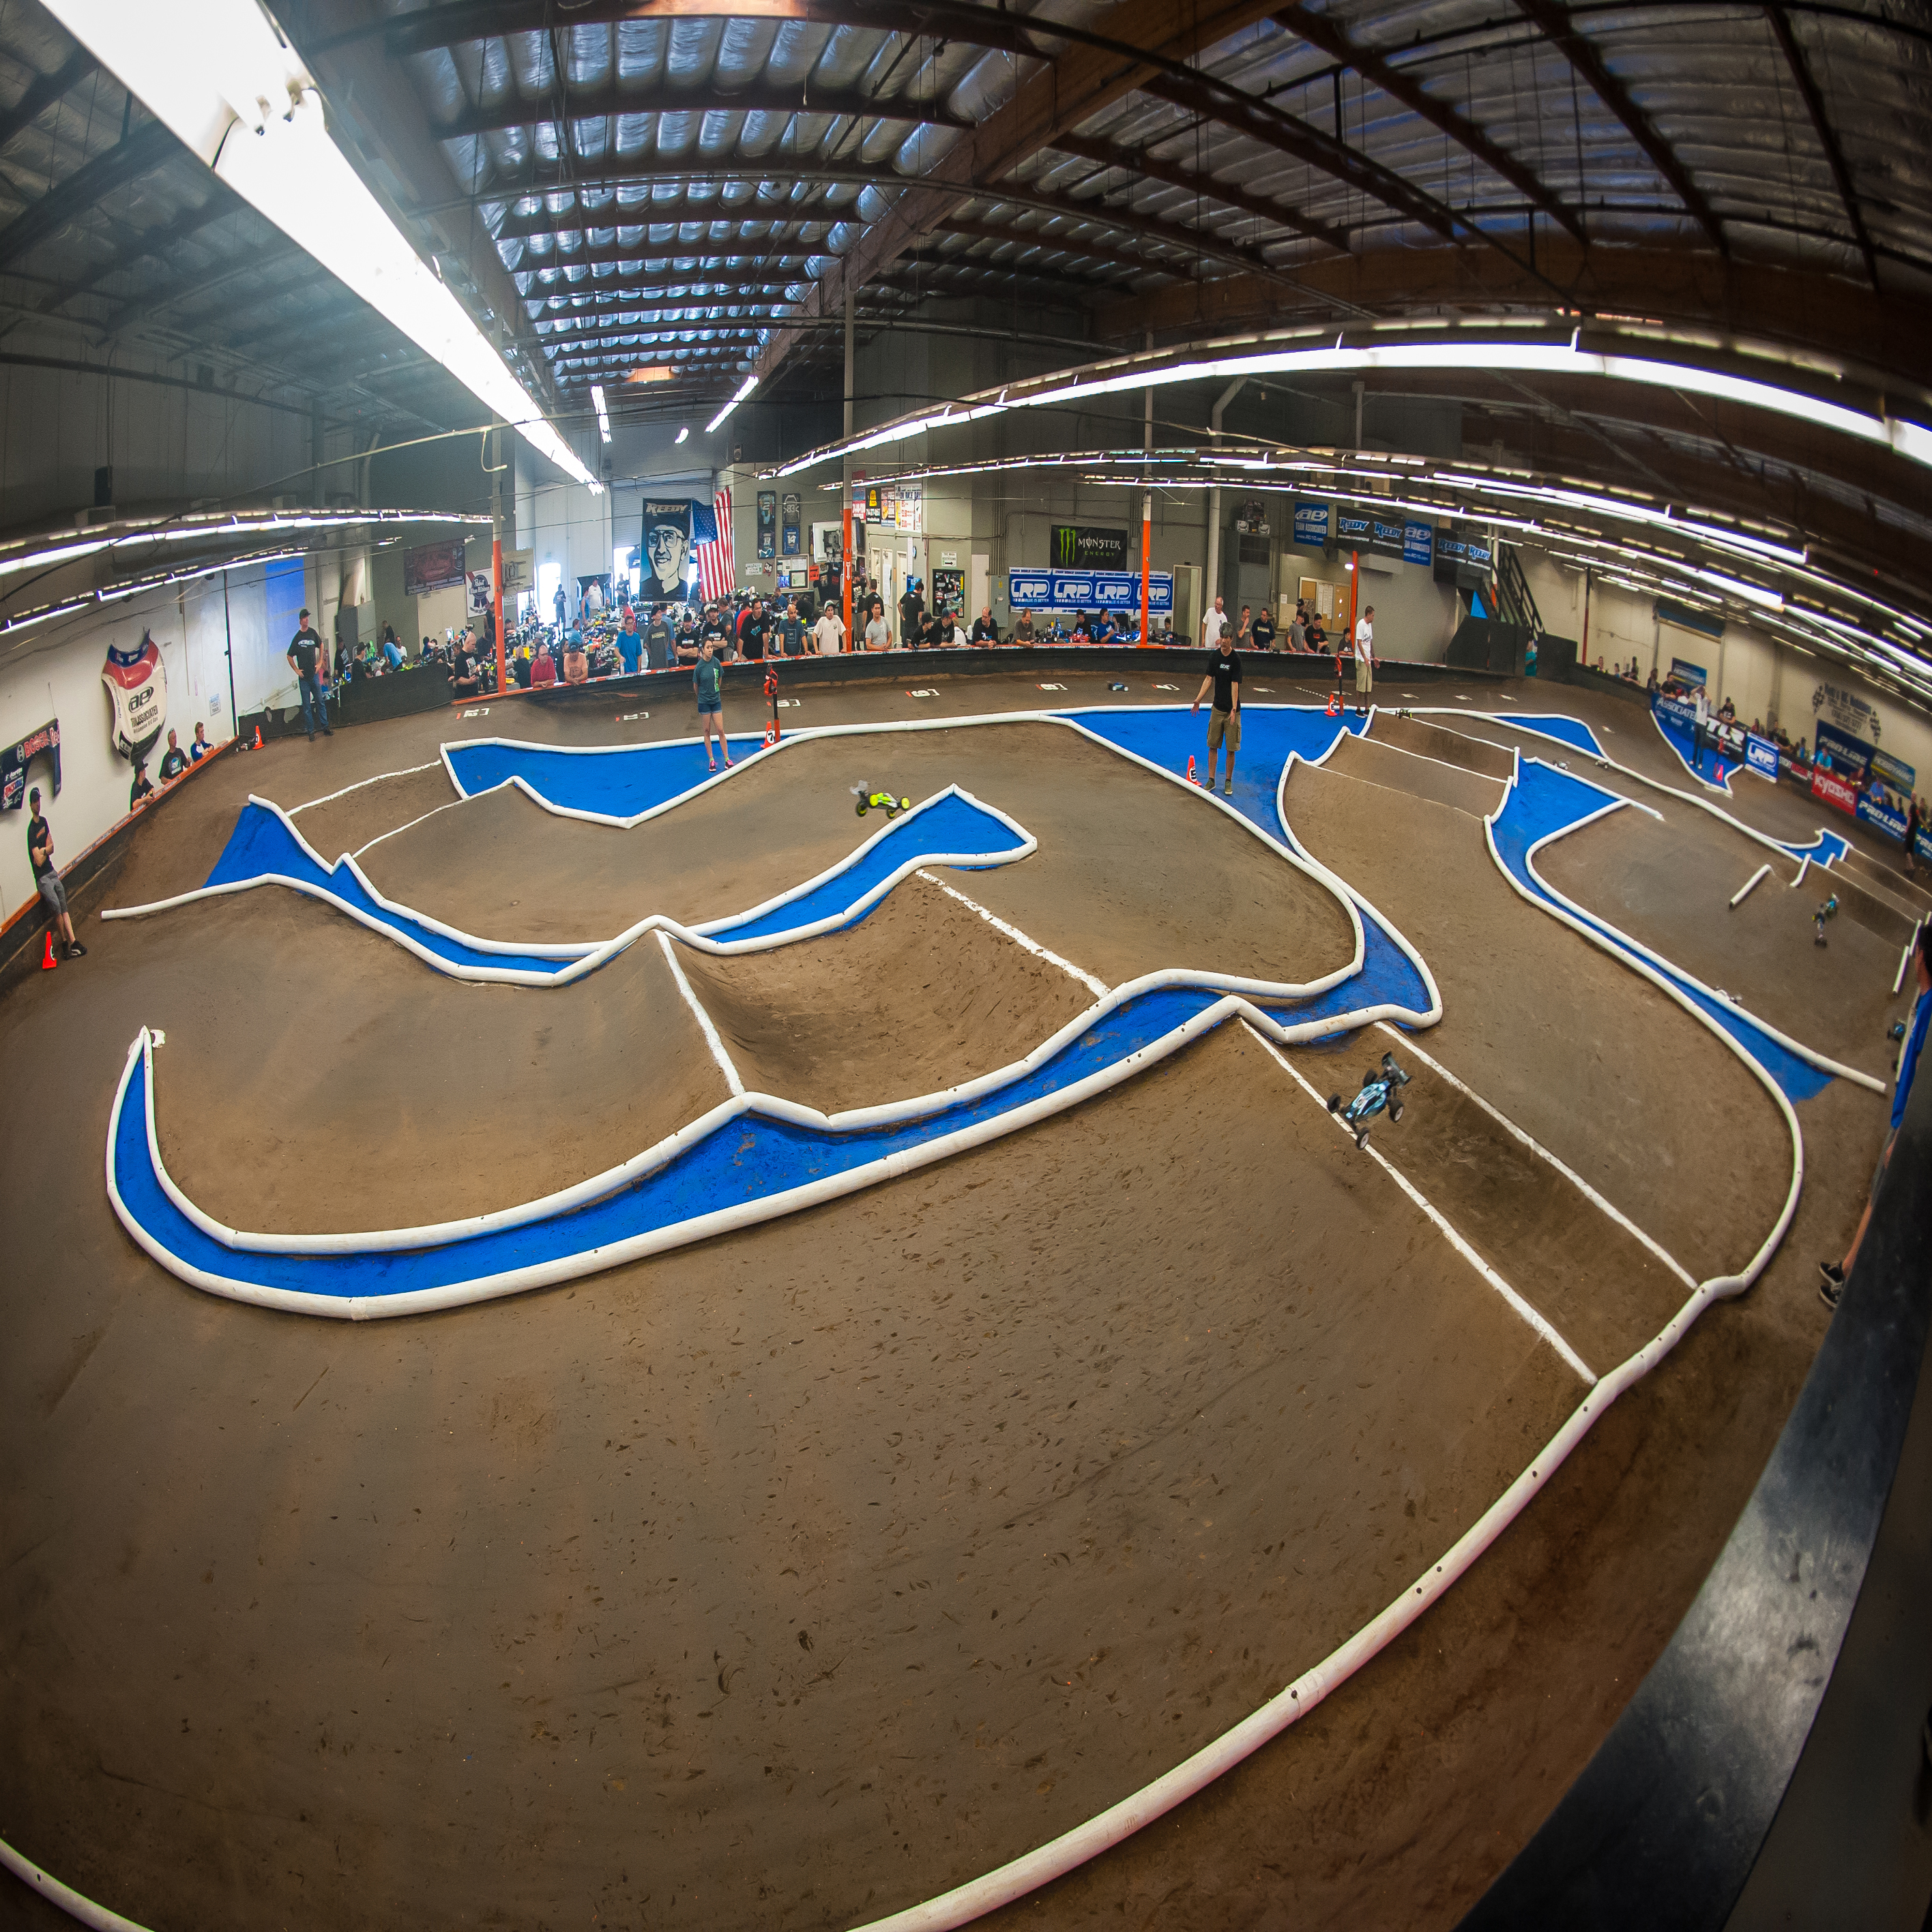 2015 Pro-Line Surf City Classic: Things Are Under Way